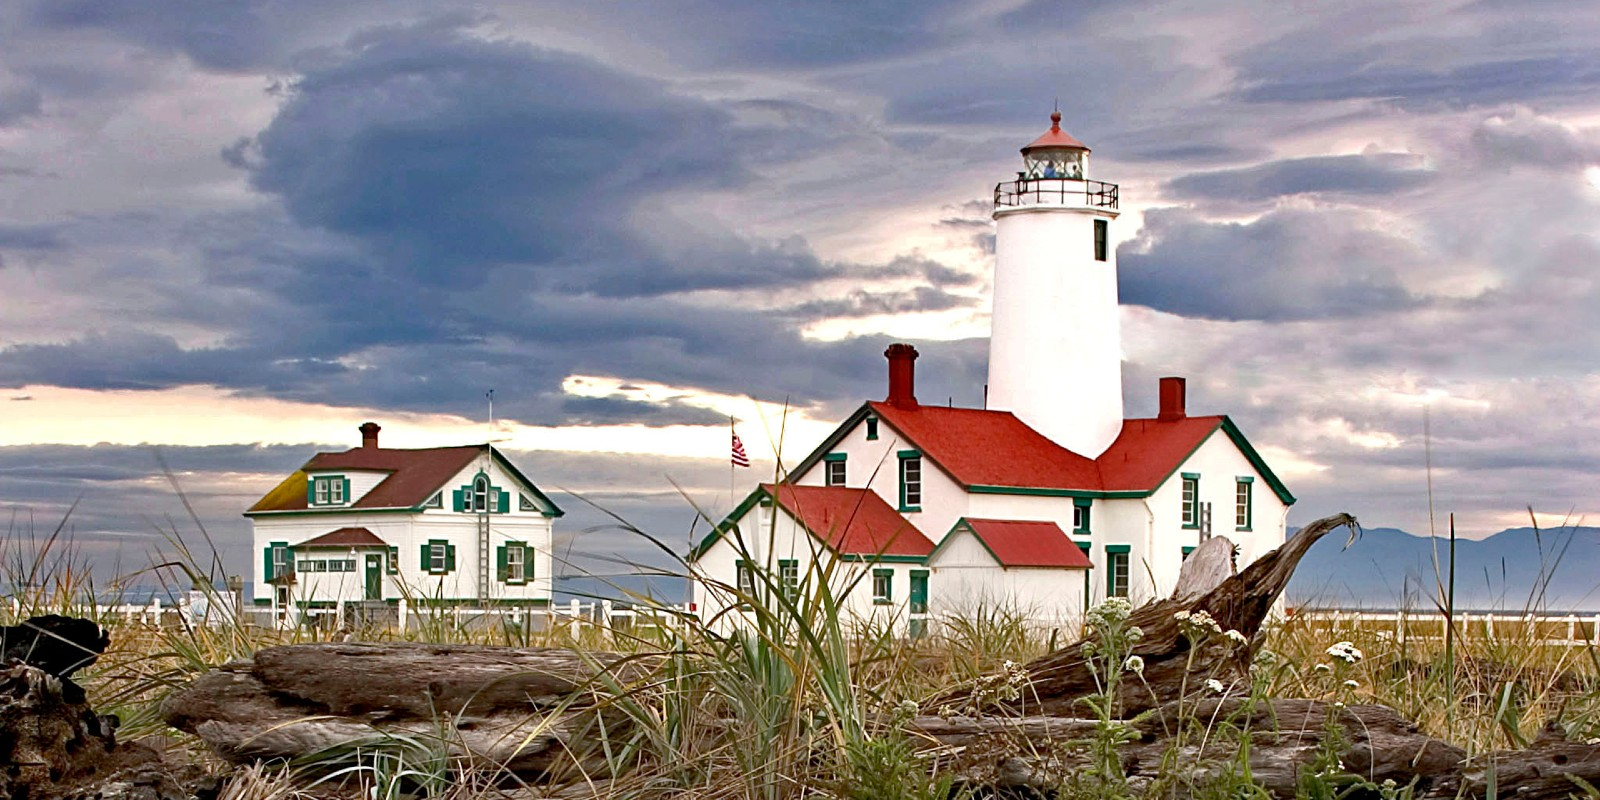 The New Dungeness Light Station at the tip of Dungeness Spit